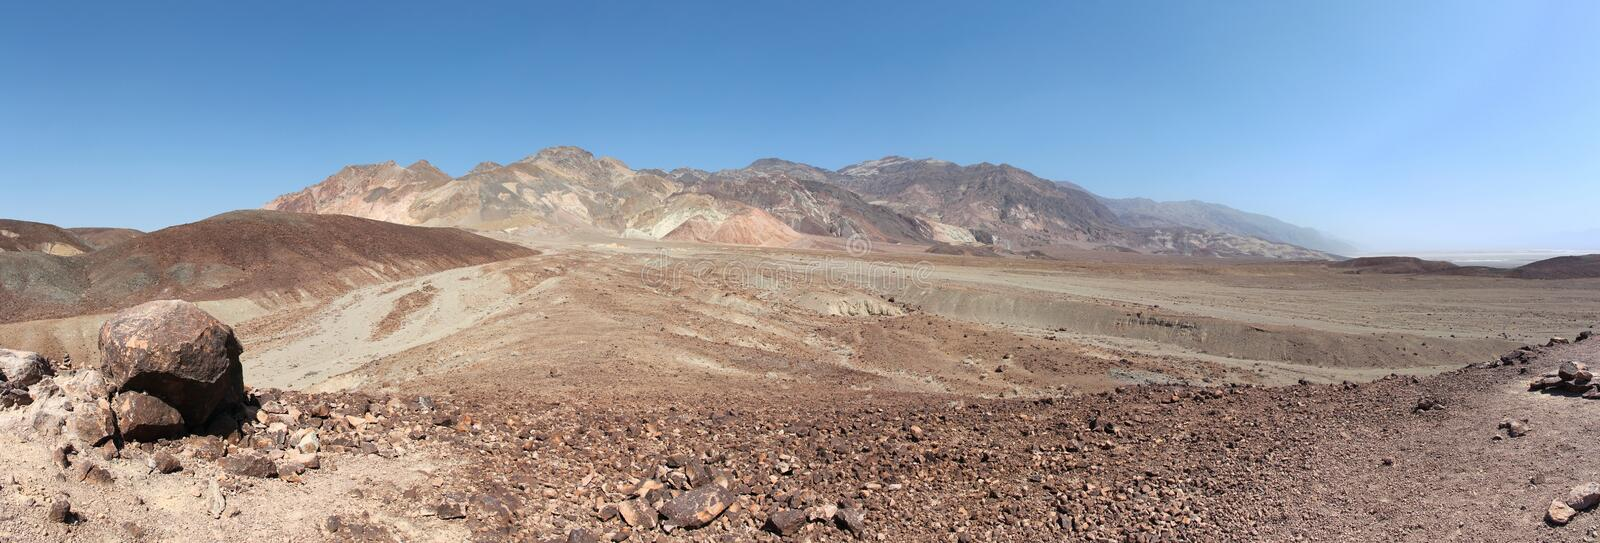 Death Valley panorama. Desert landscape of California. Mojave Desert in Death Valley National Park royalty free stock photography